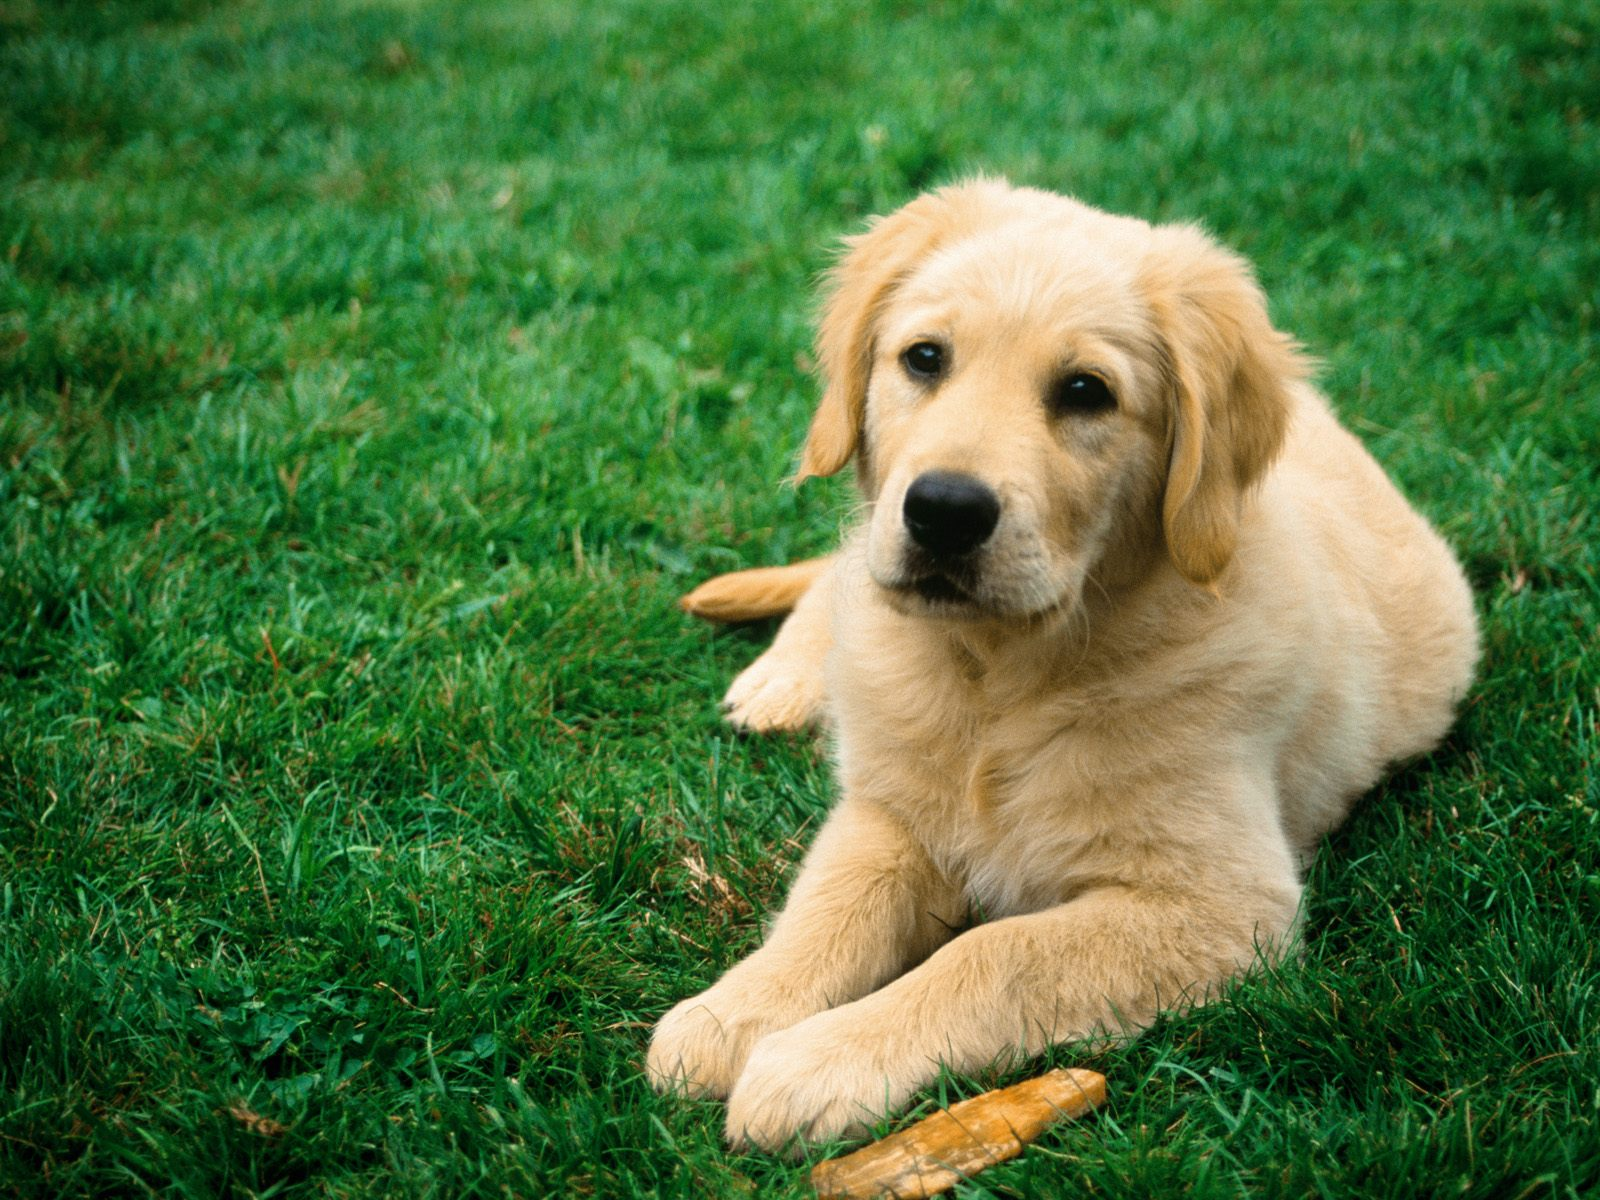 dogs wallpapers dog wallpaper dog wallpapers dogs wallpaper dogs for 1600x1200